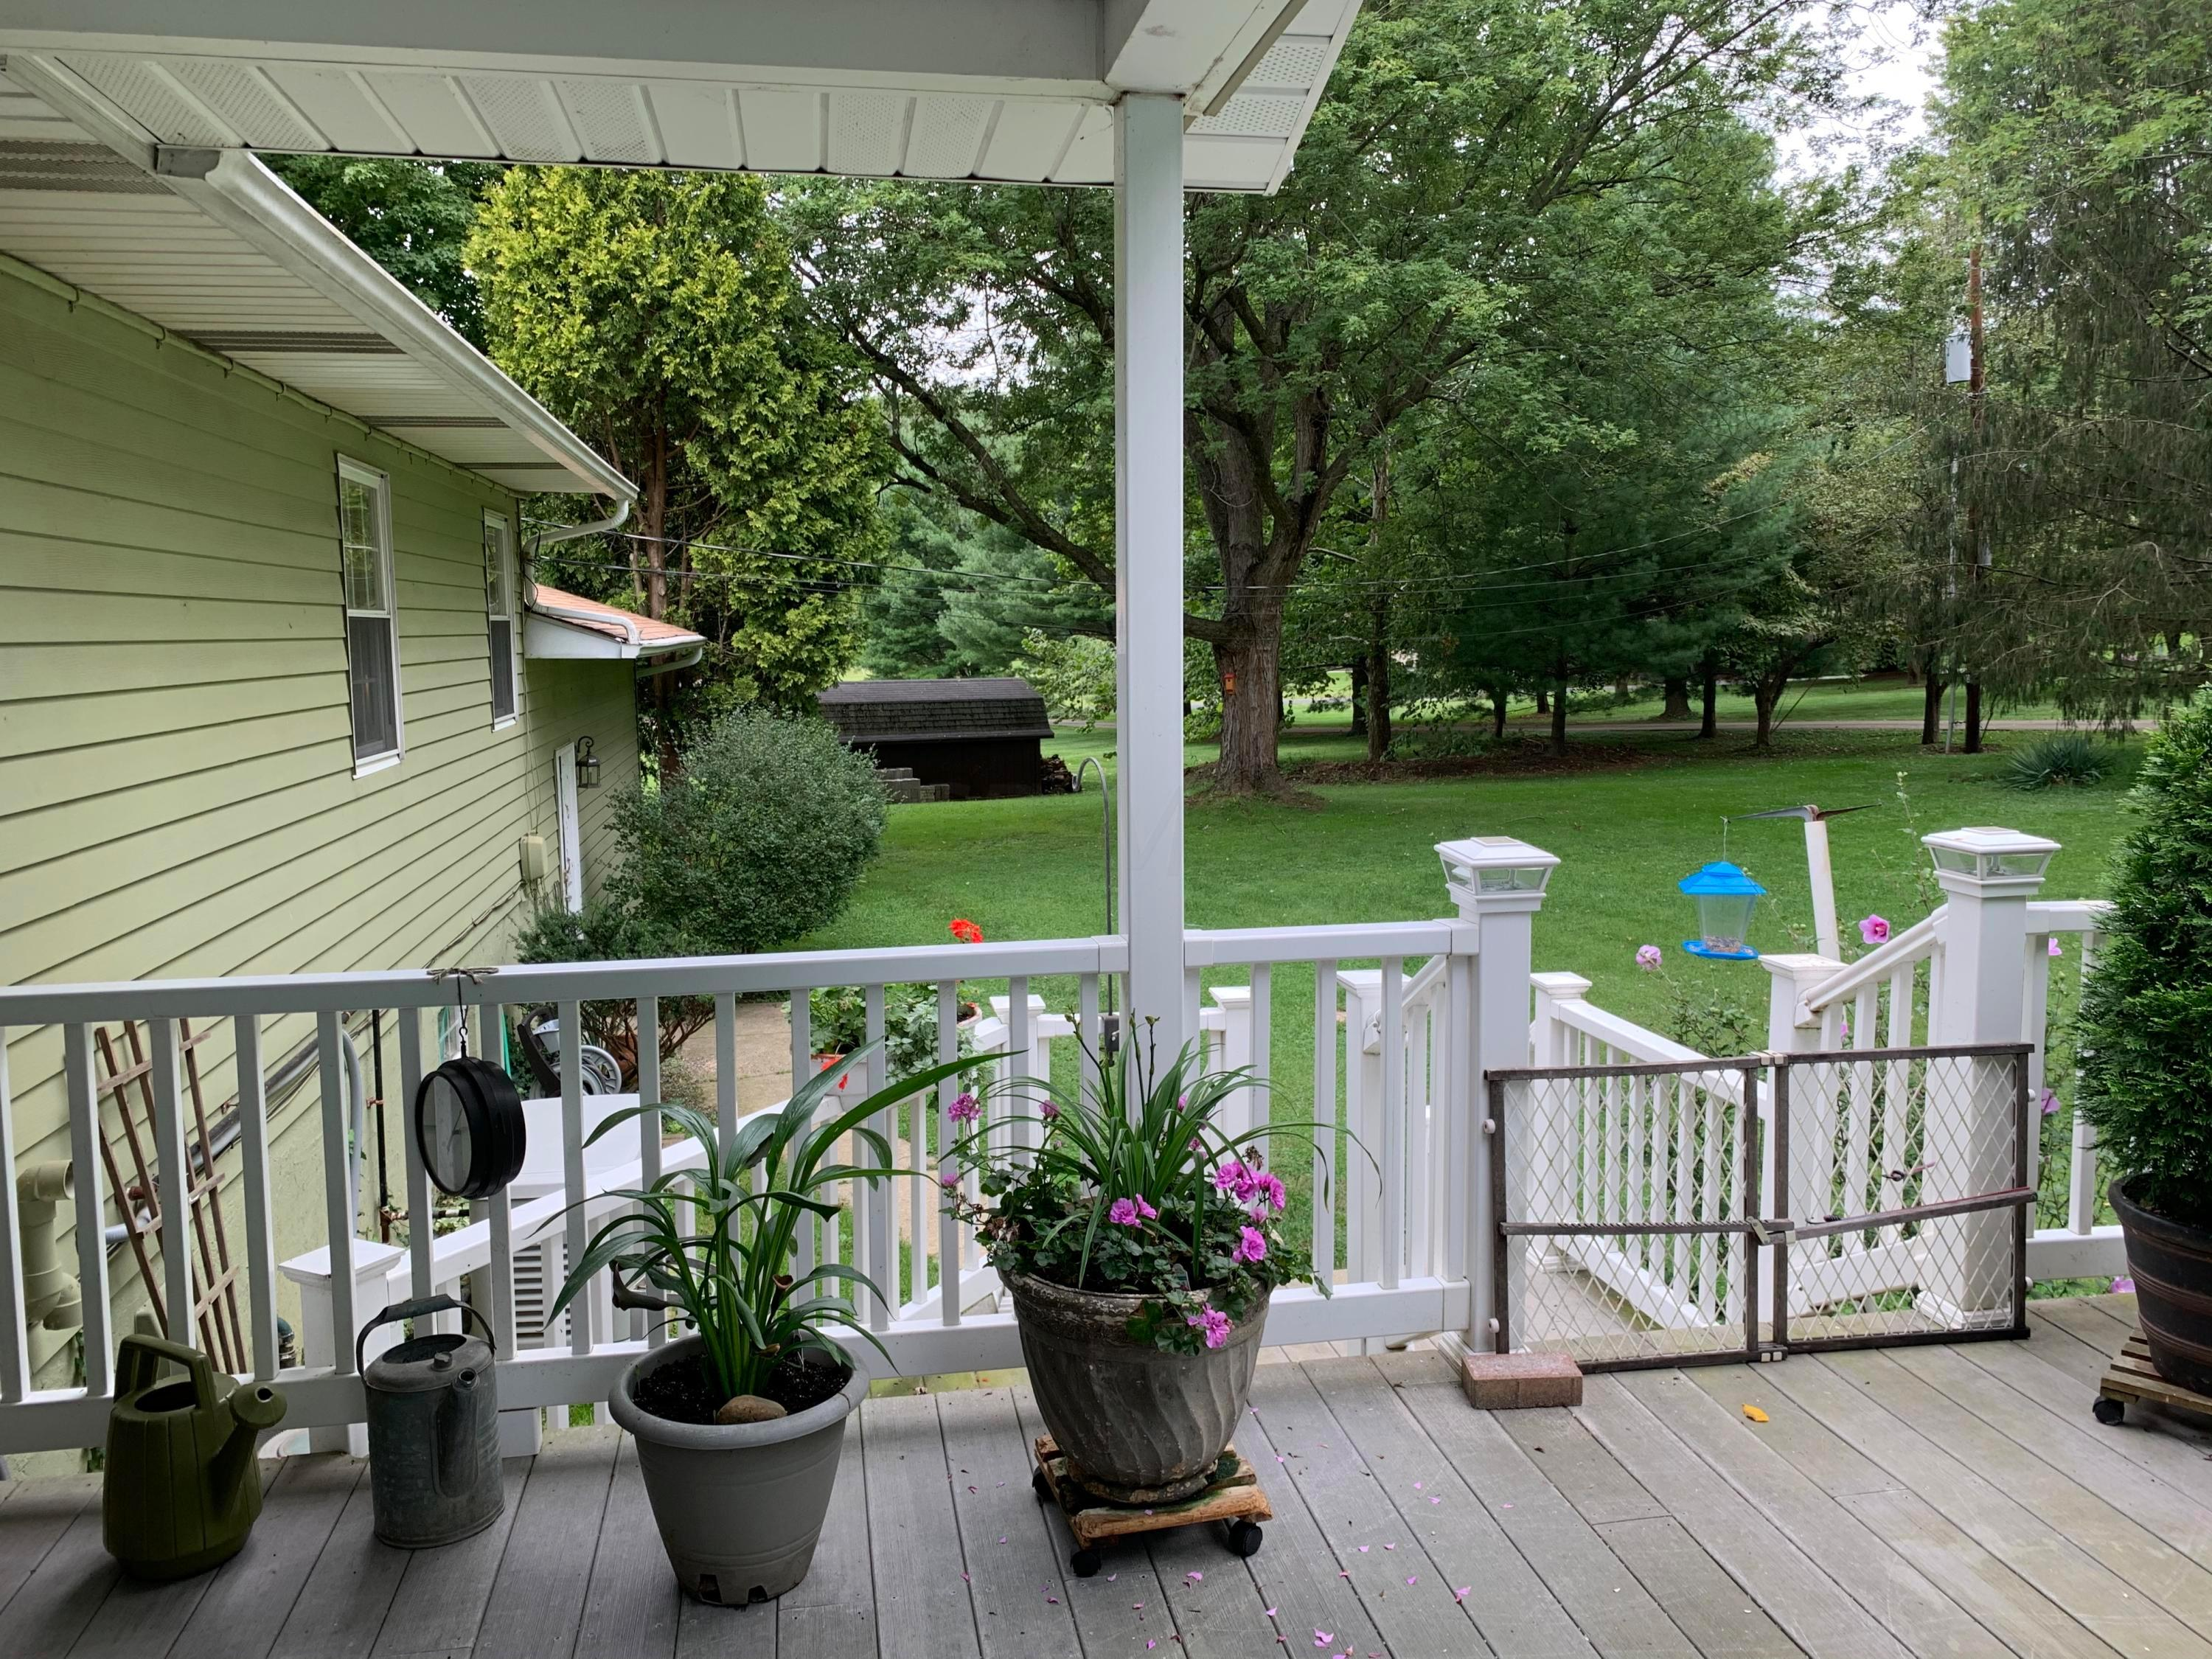 141 Dorrence Road, Granville, Ohio 43023, 3 Bedrooms Bedrooms, ,2 BathroomsBathrooms,Residential,For Sale,Dorrence,220032012